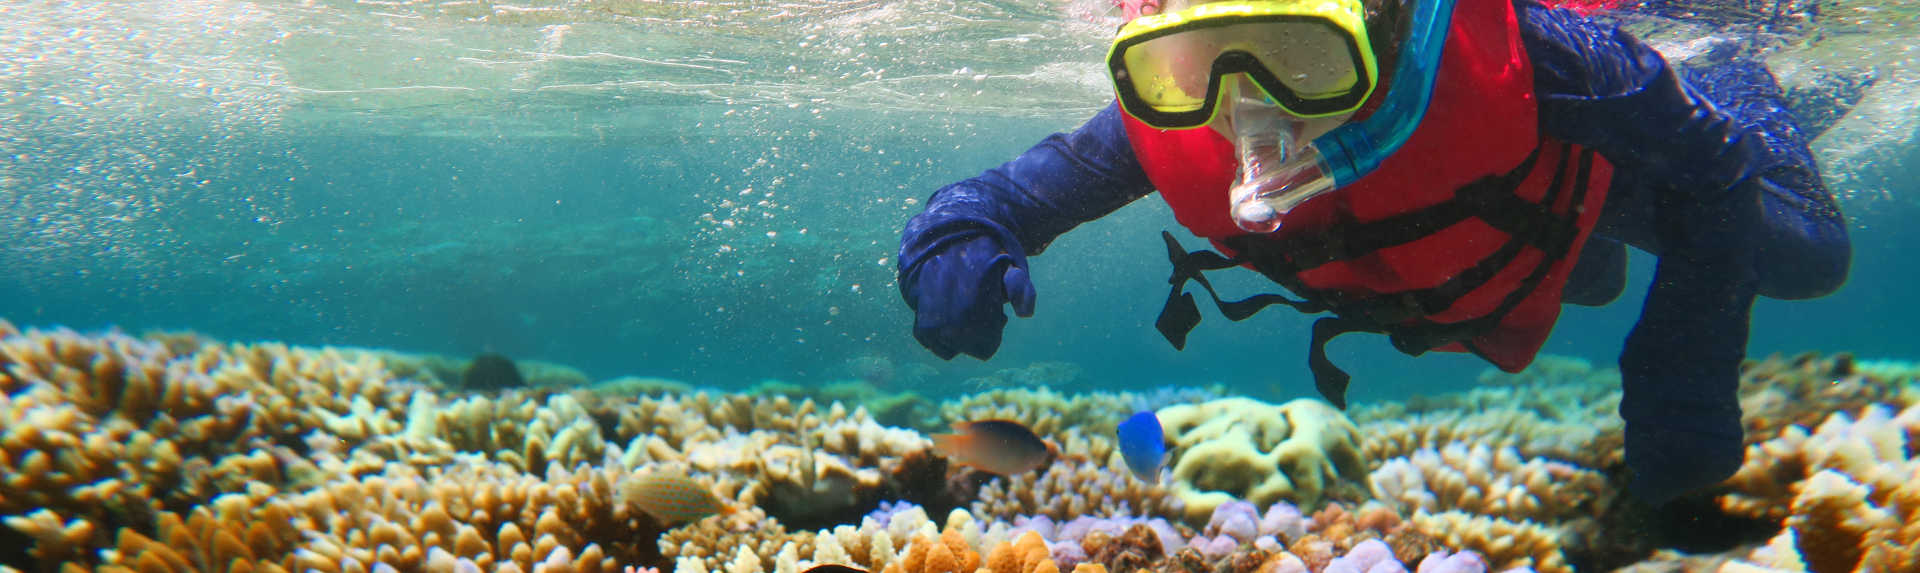 Is it safe to snorkel the Great Barrier Reef?